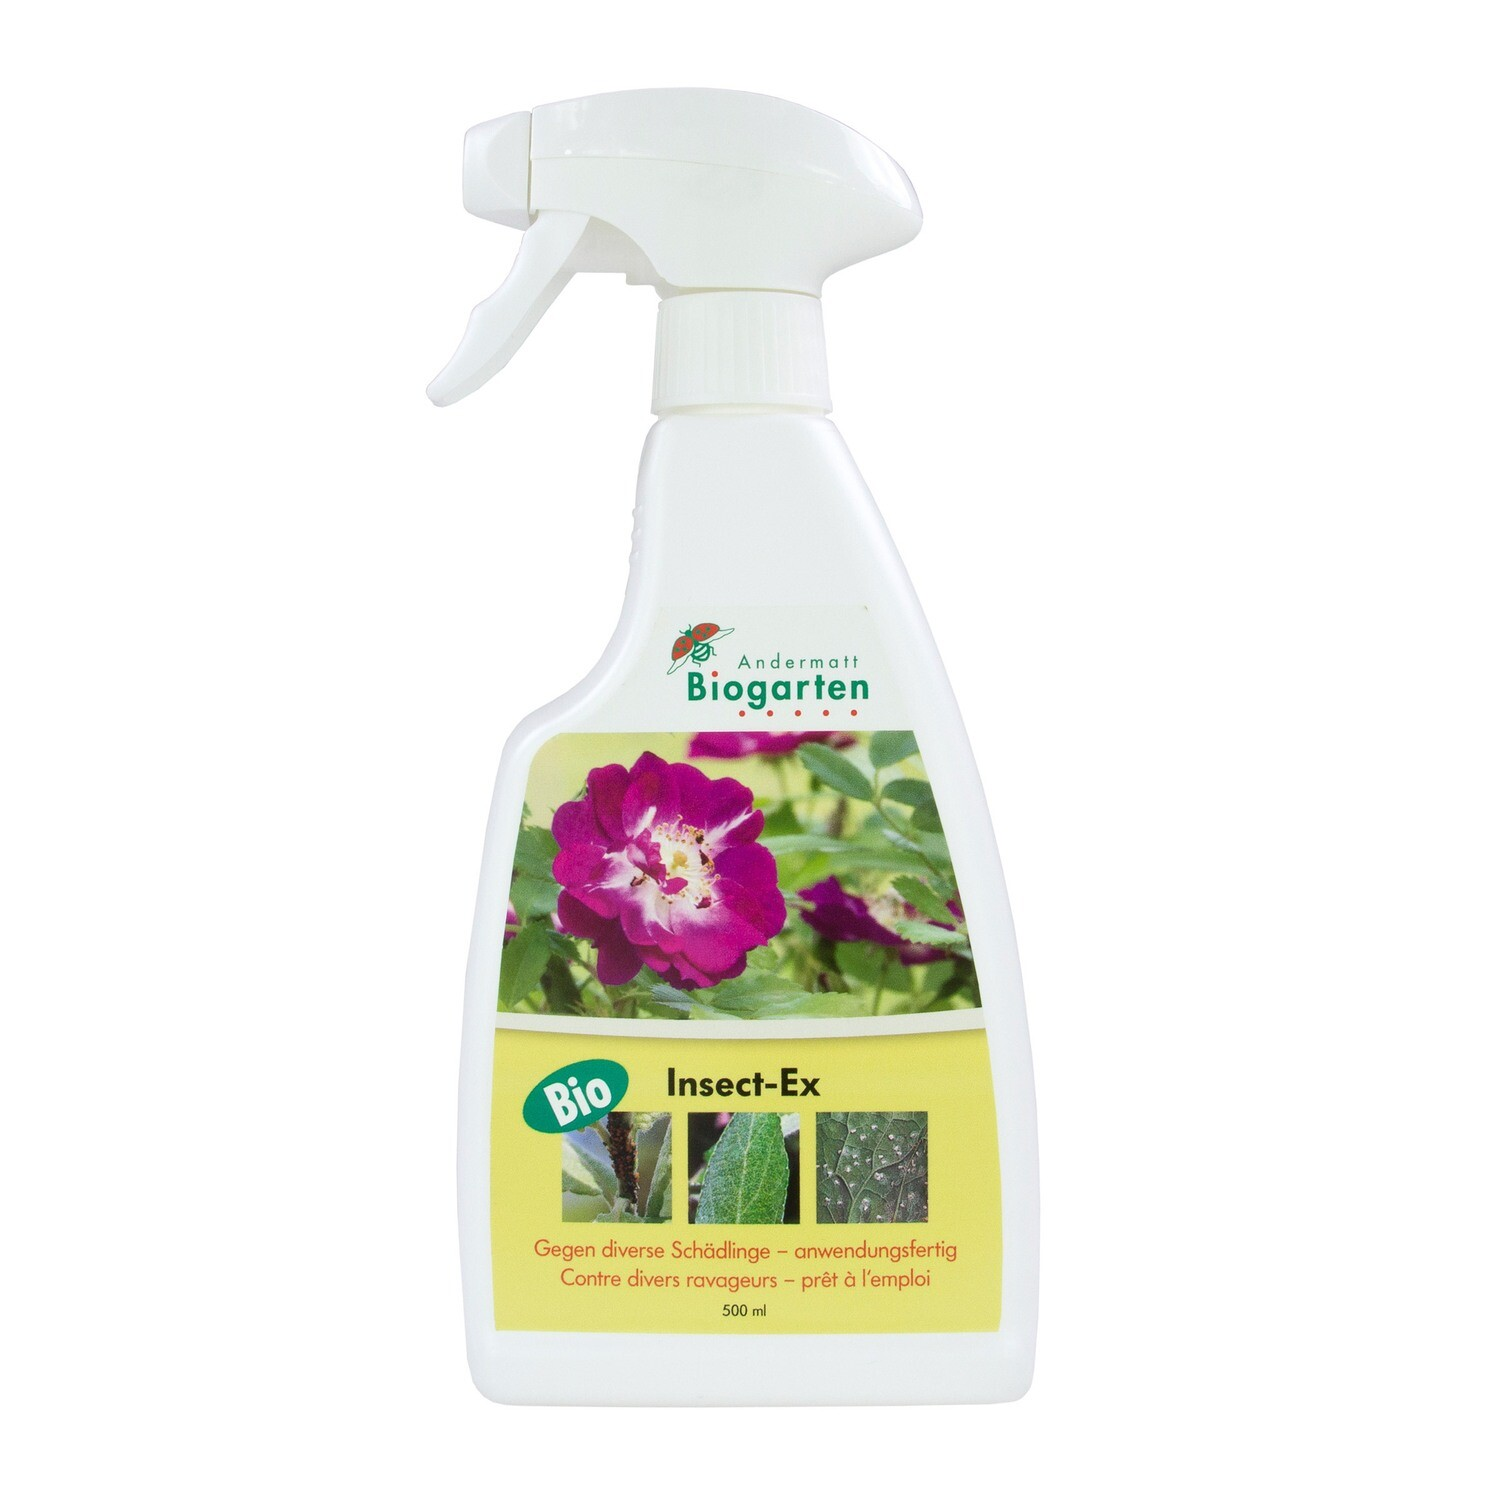 Andermatt Biogarten - Insect-Ex 500ml spray